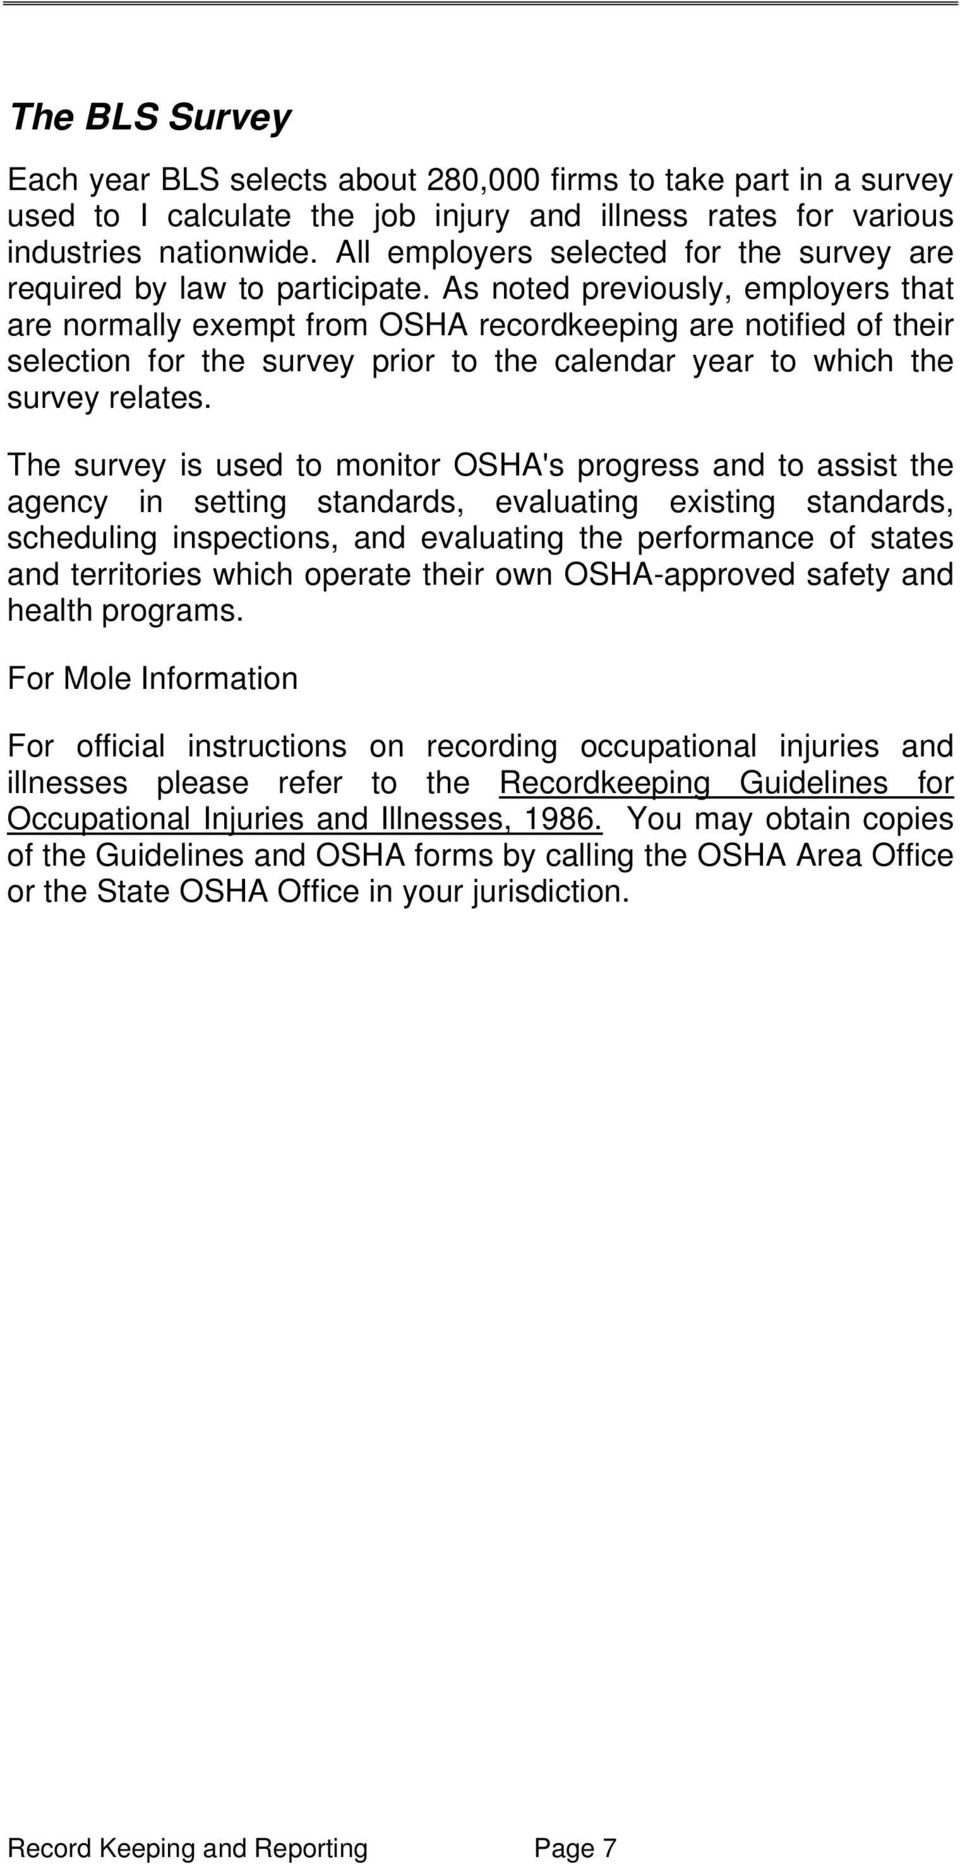 As noted previously, employers that are normally exempt from OSHA recordkeeping are notified of their selection for the survey prior to the calendar year to which the survey relates.